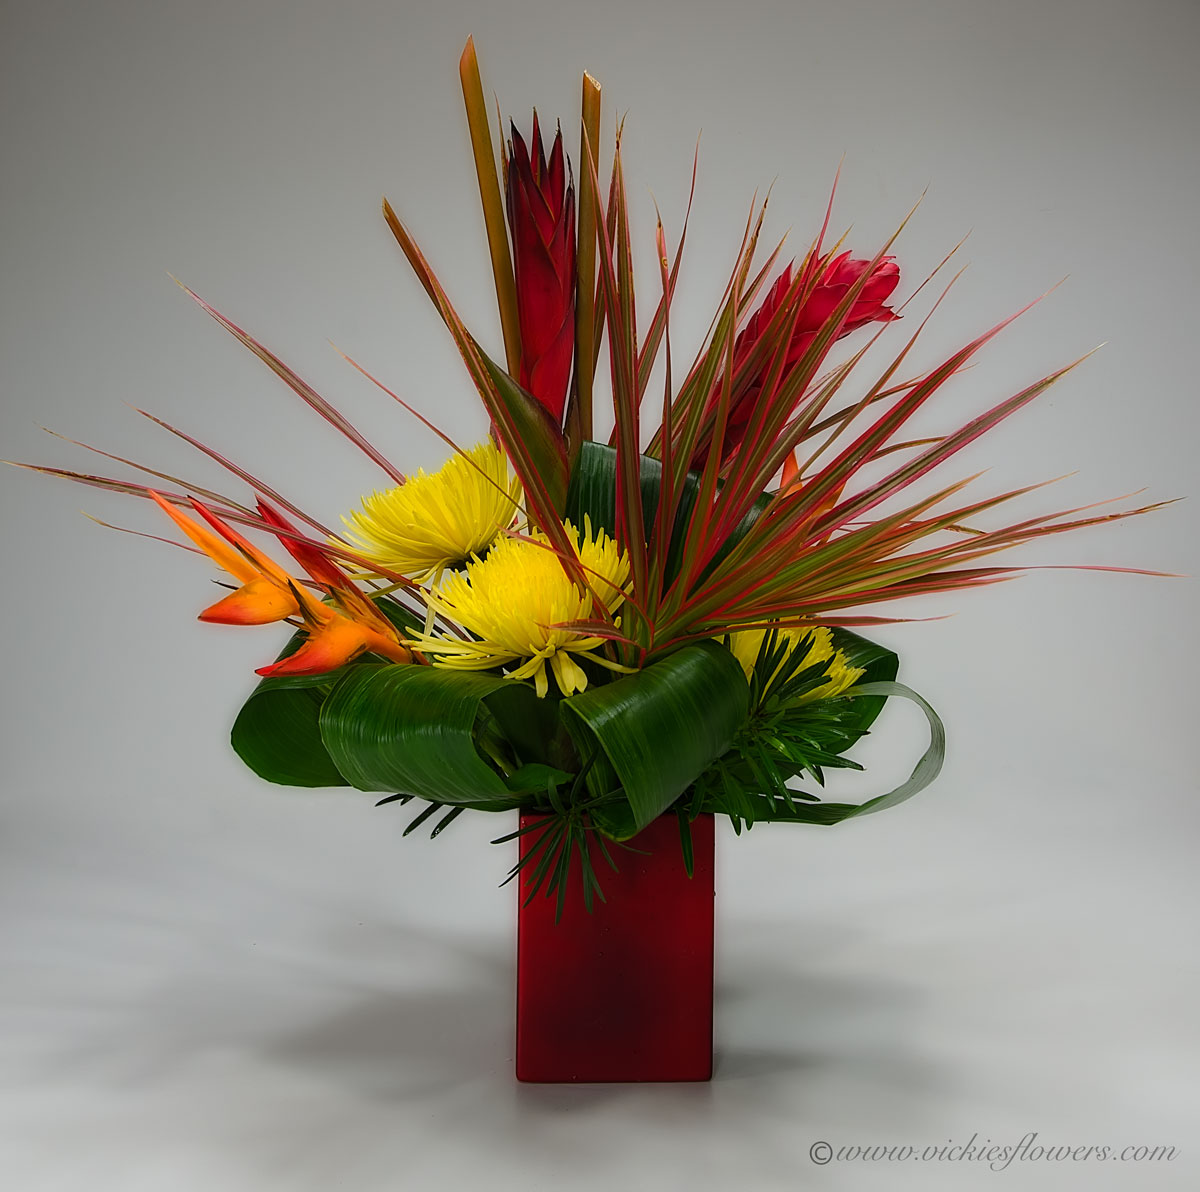 Ikebana asian flower arrangements vickies flowers brighton co ikebana oriental flowers ib 033 75 plus tax and delivery ikebana or sogetsu inspired tropical arrangement with red ginger and yellow mums in classy mightylinksfo